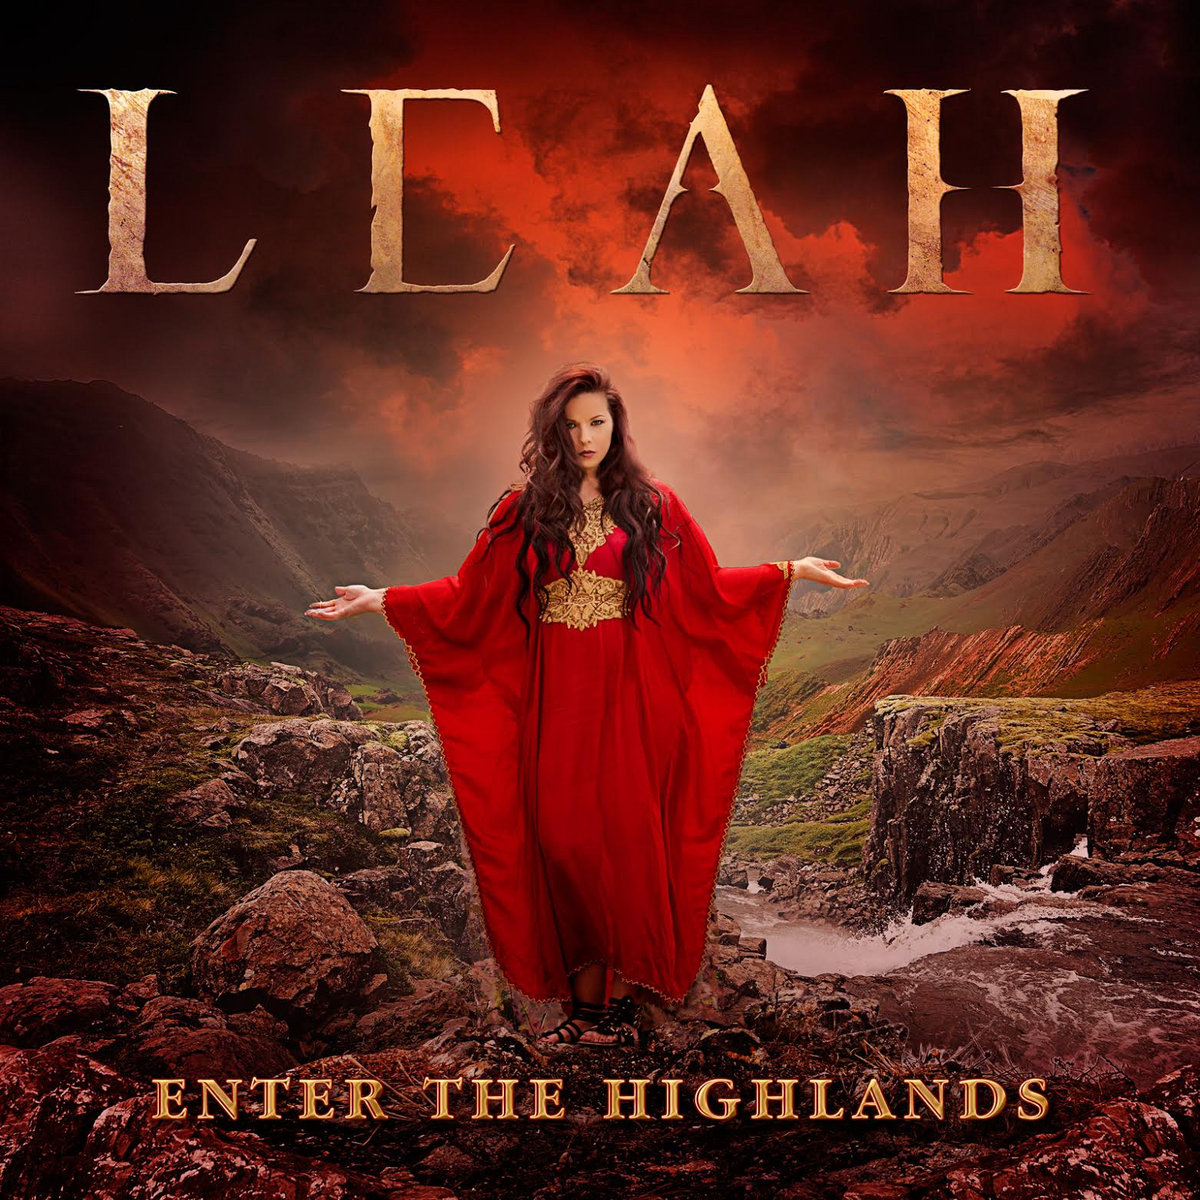 Enter the highlands single leah by leah ccuart Image collections